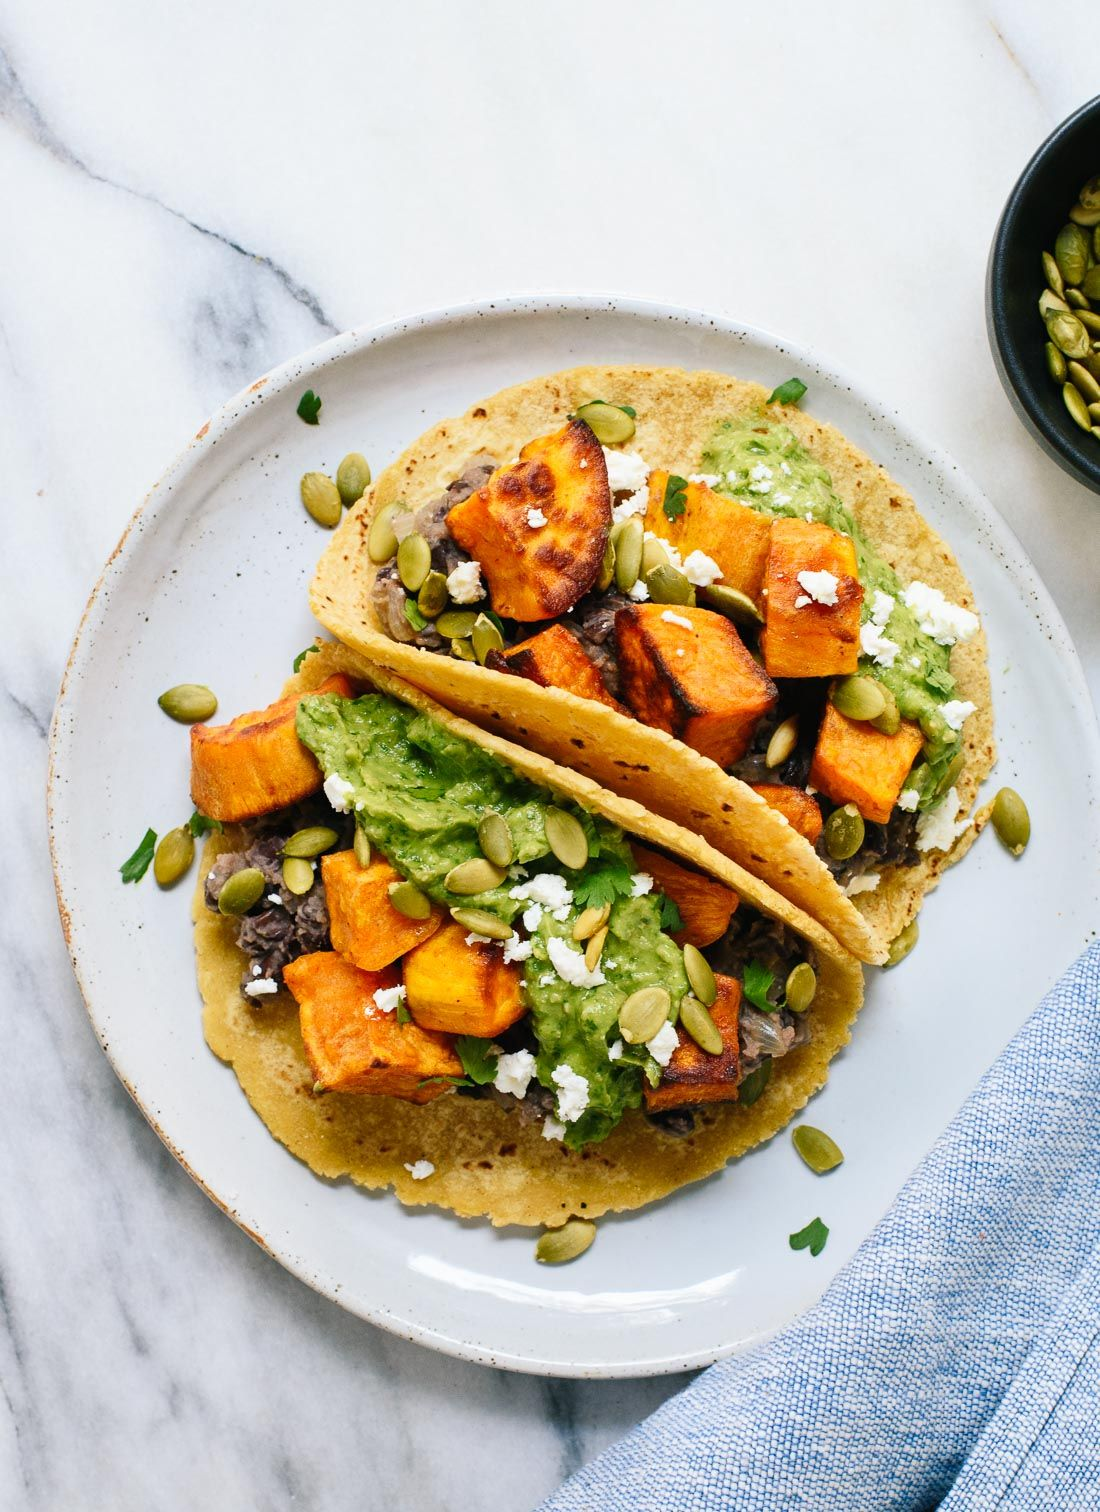 These roasted sweet potato tacos feature spicy black beans and avocado-pepita dip. Delicious! This taco recipe is vegetarian (easily vegan) and gluten-free.